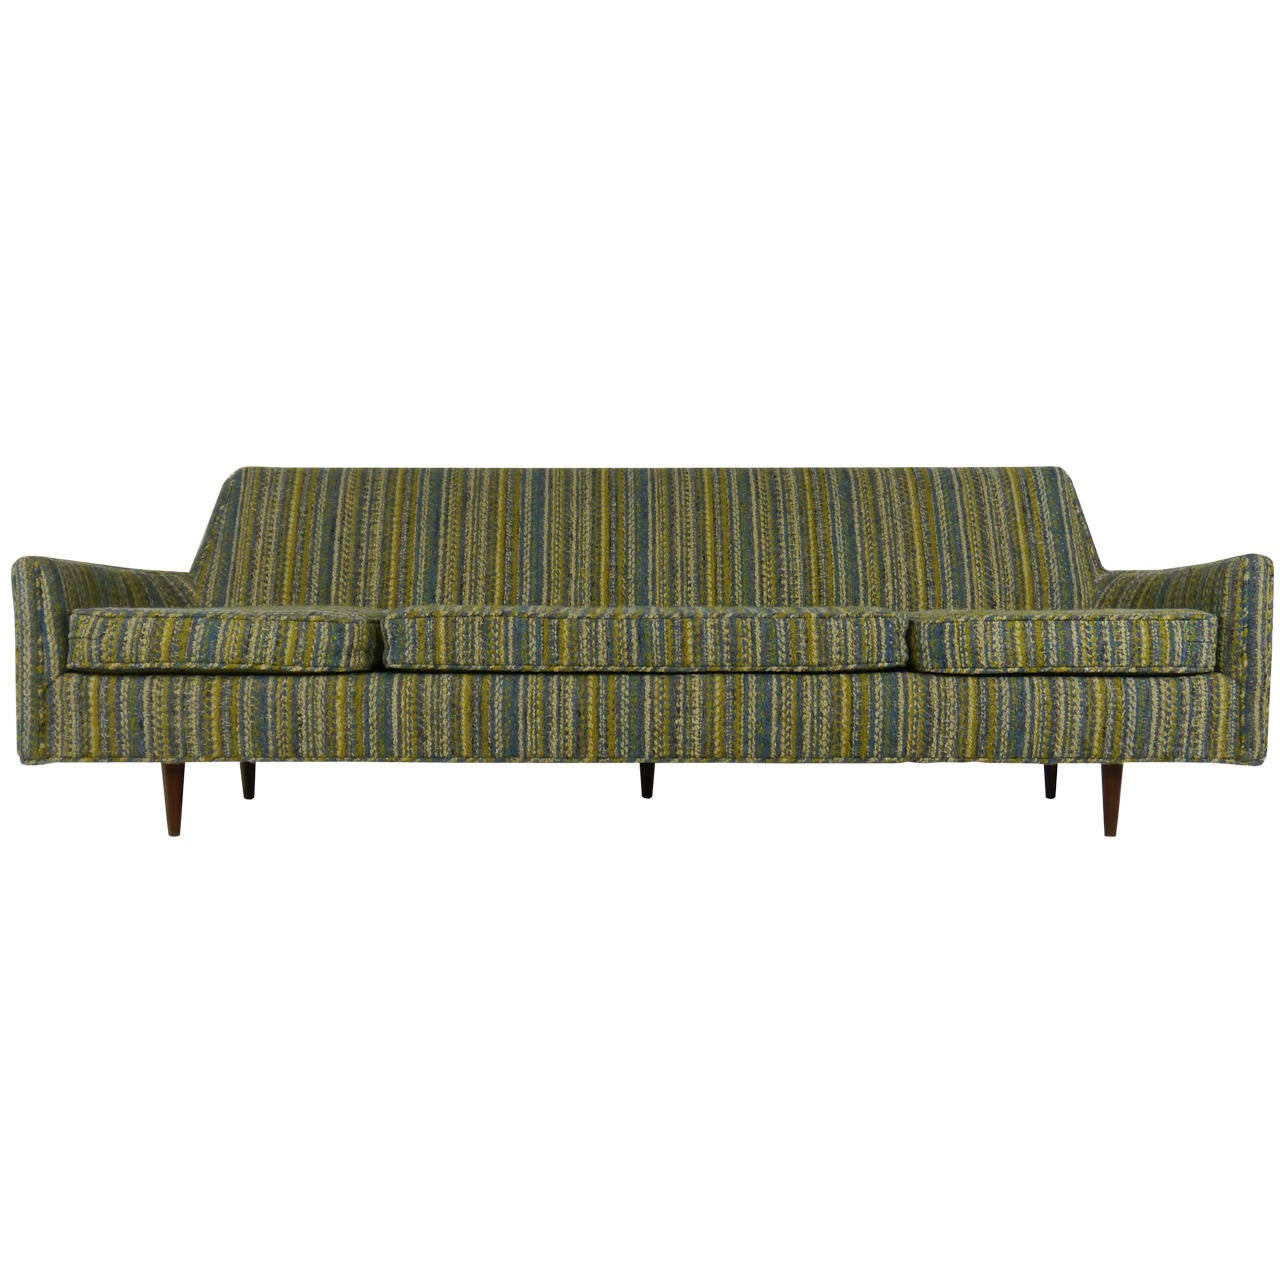 exceptional midcentury sofa by homer tremulis 1